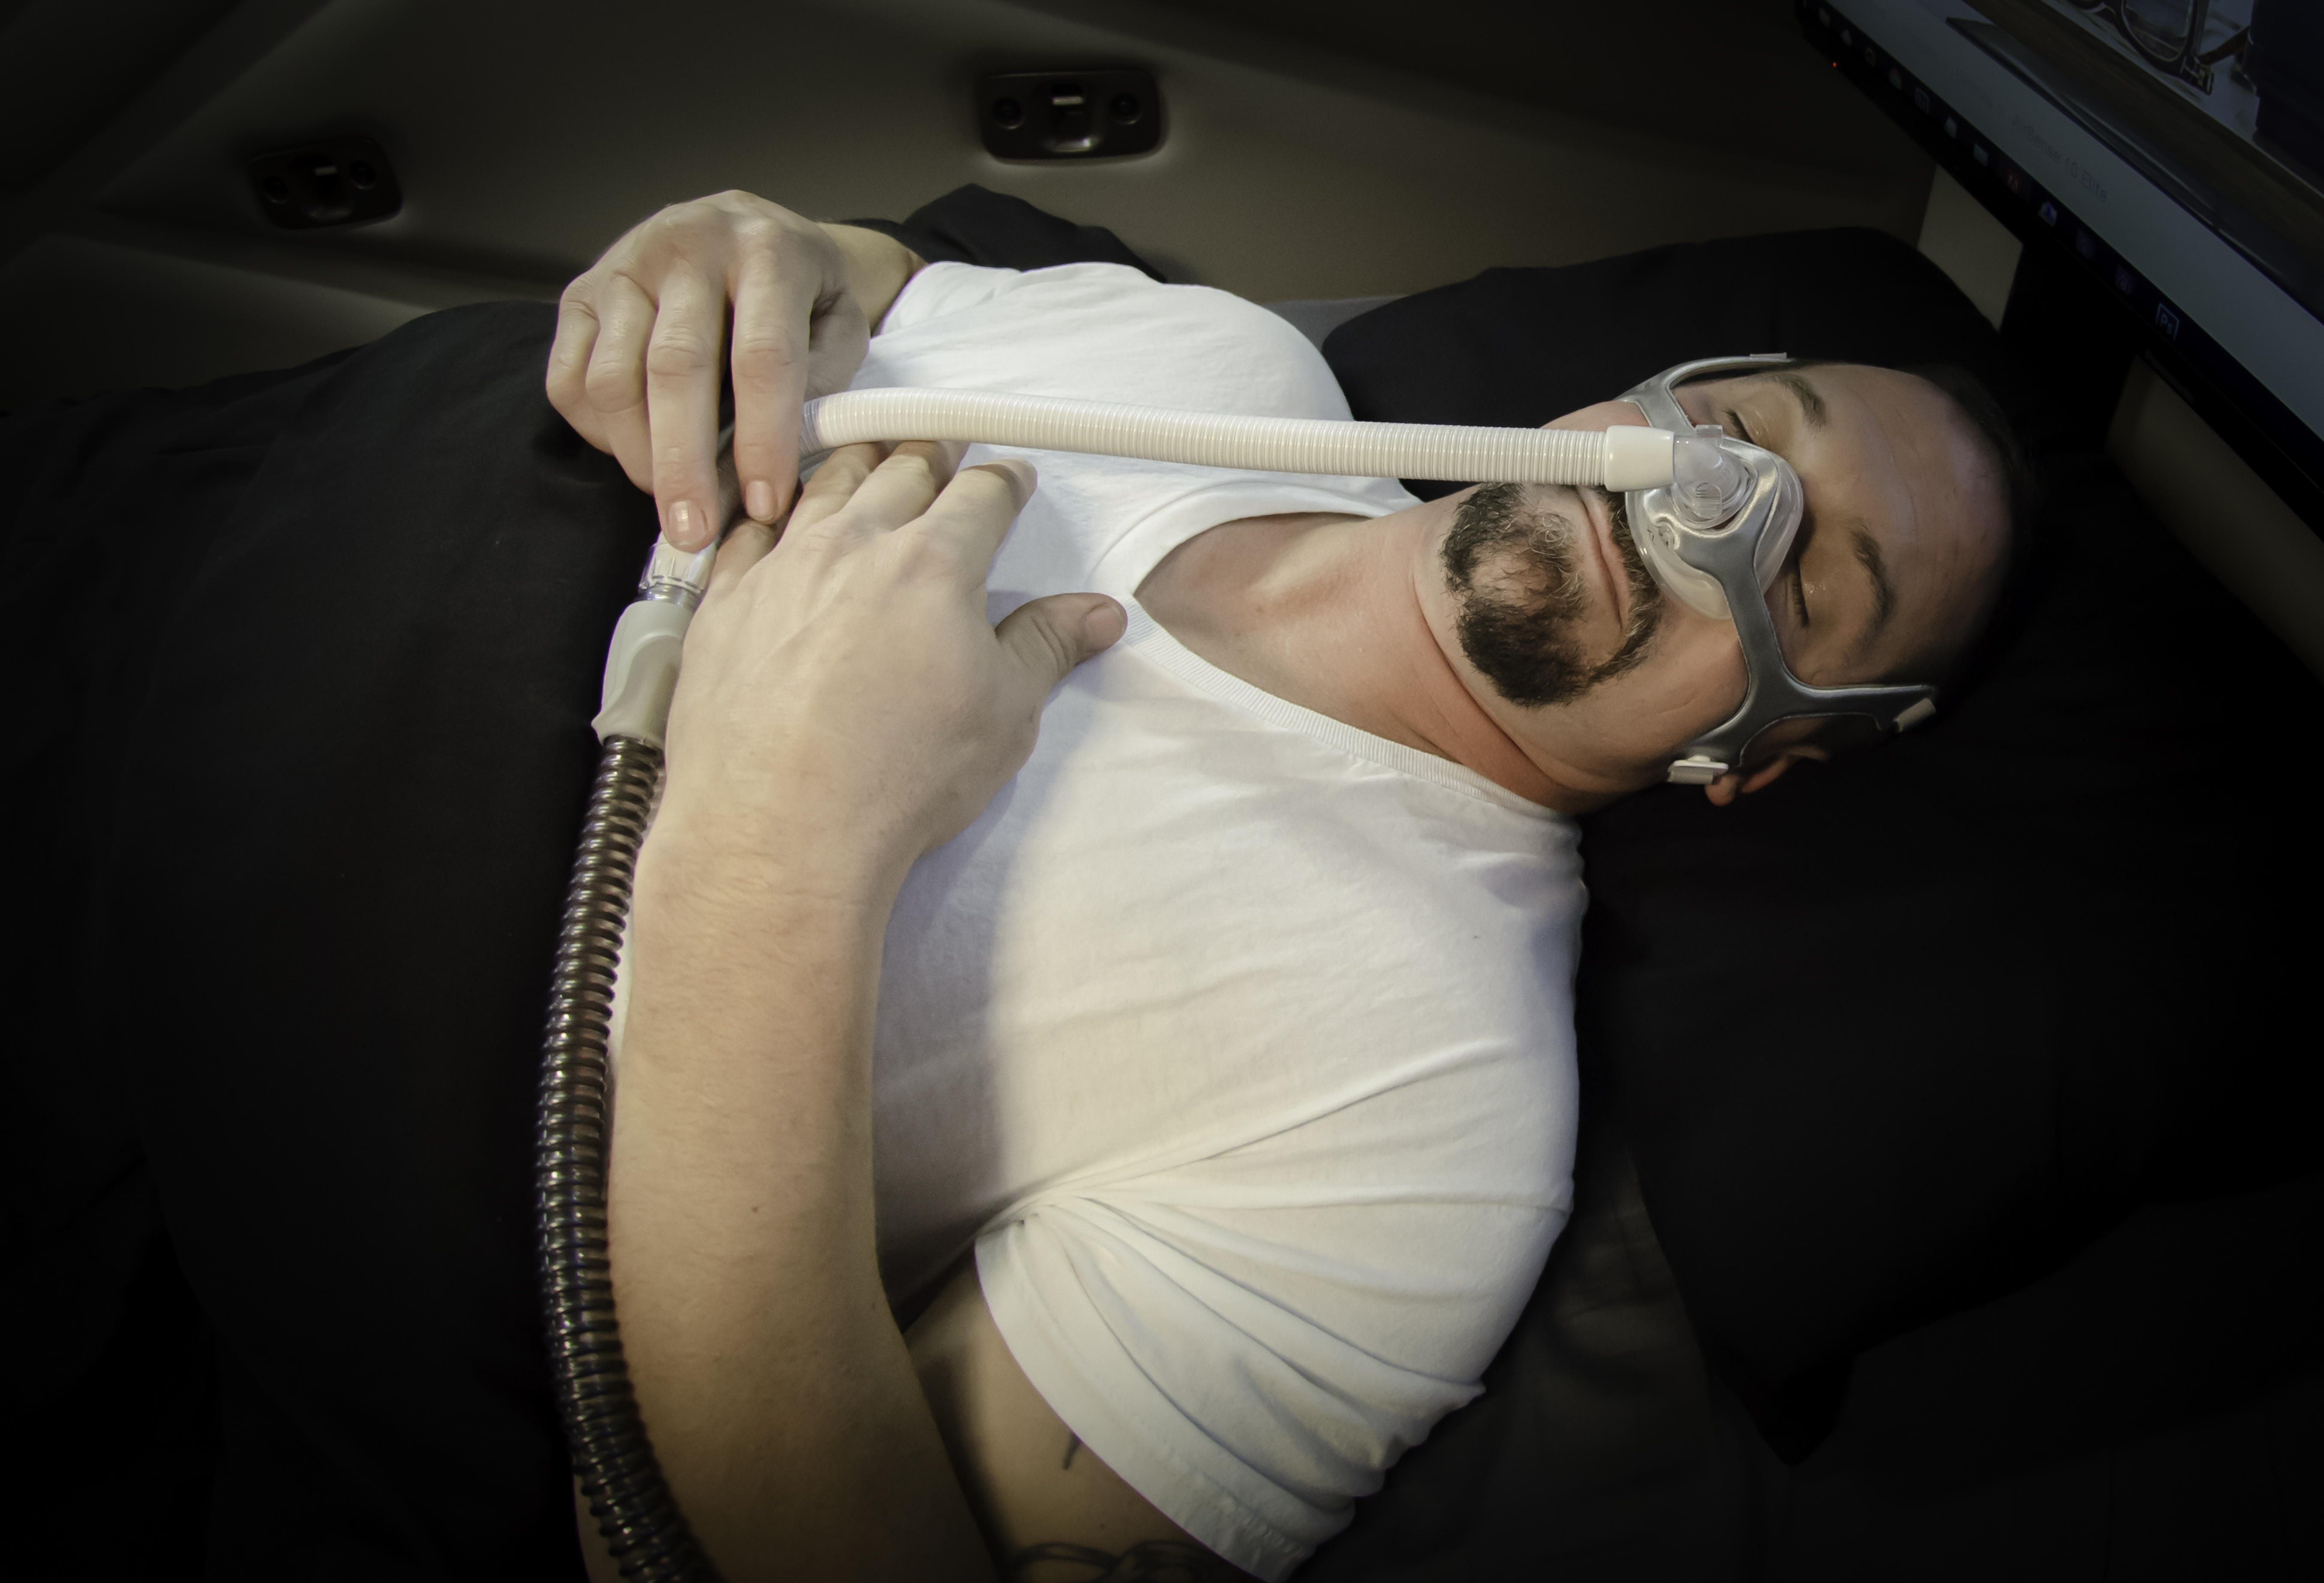 Truck drivers question whether they are legally allowed to drive if sleep apnea device is recalled